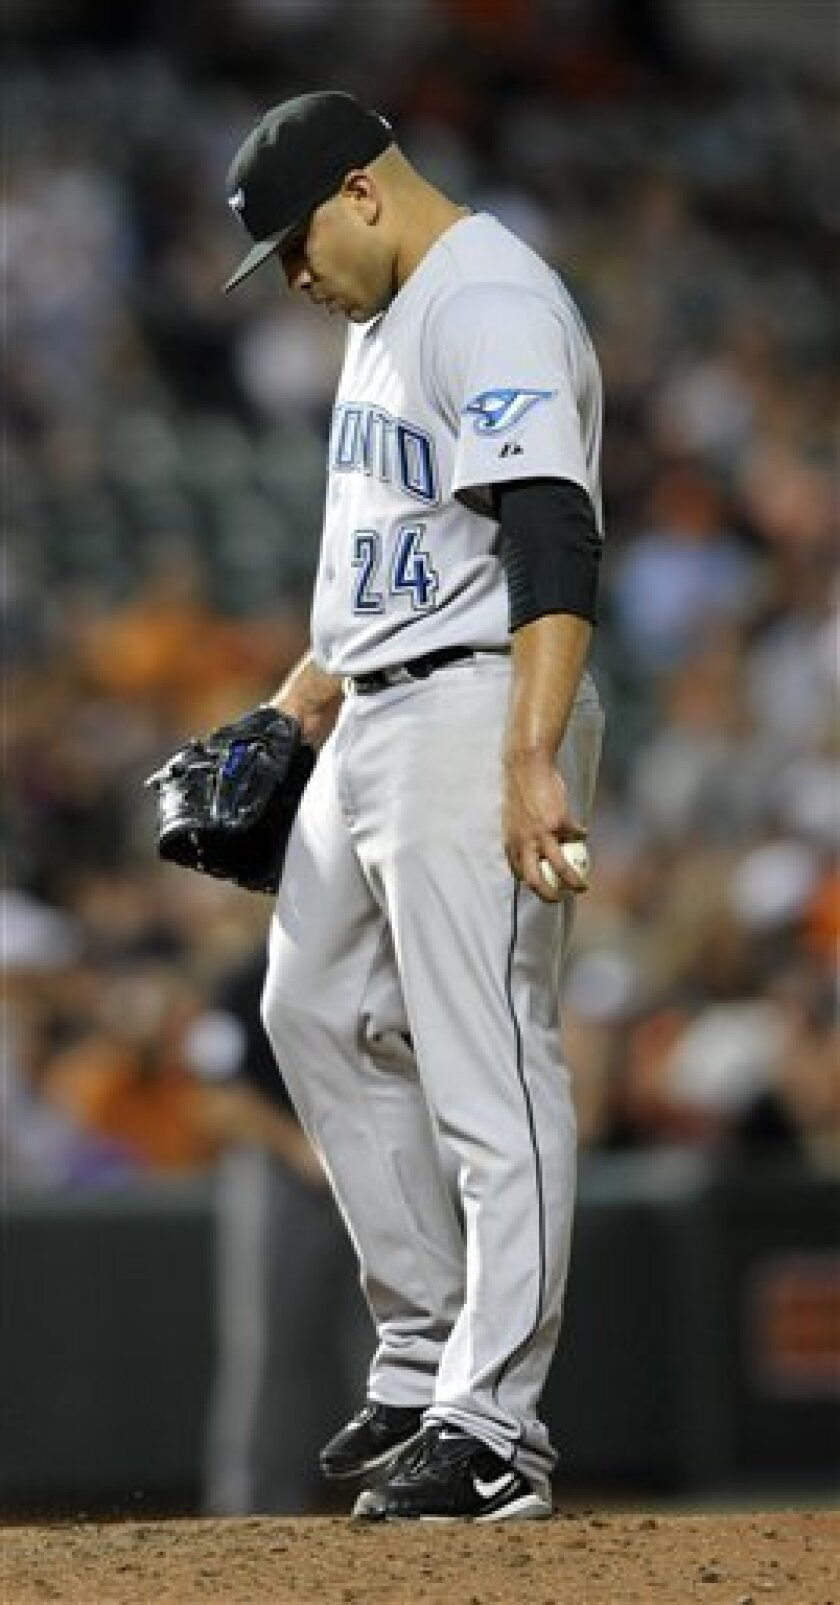 Toronto Blue Jays pitcher Ricky Romero reacts after giving up a grand slam to the Baltimore Orioles in the sixth inning of a baseball game, Saturday, June 4, 2011, in Baltimore. The Orioles won 5-3. (AP Photo/Gail Burton)